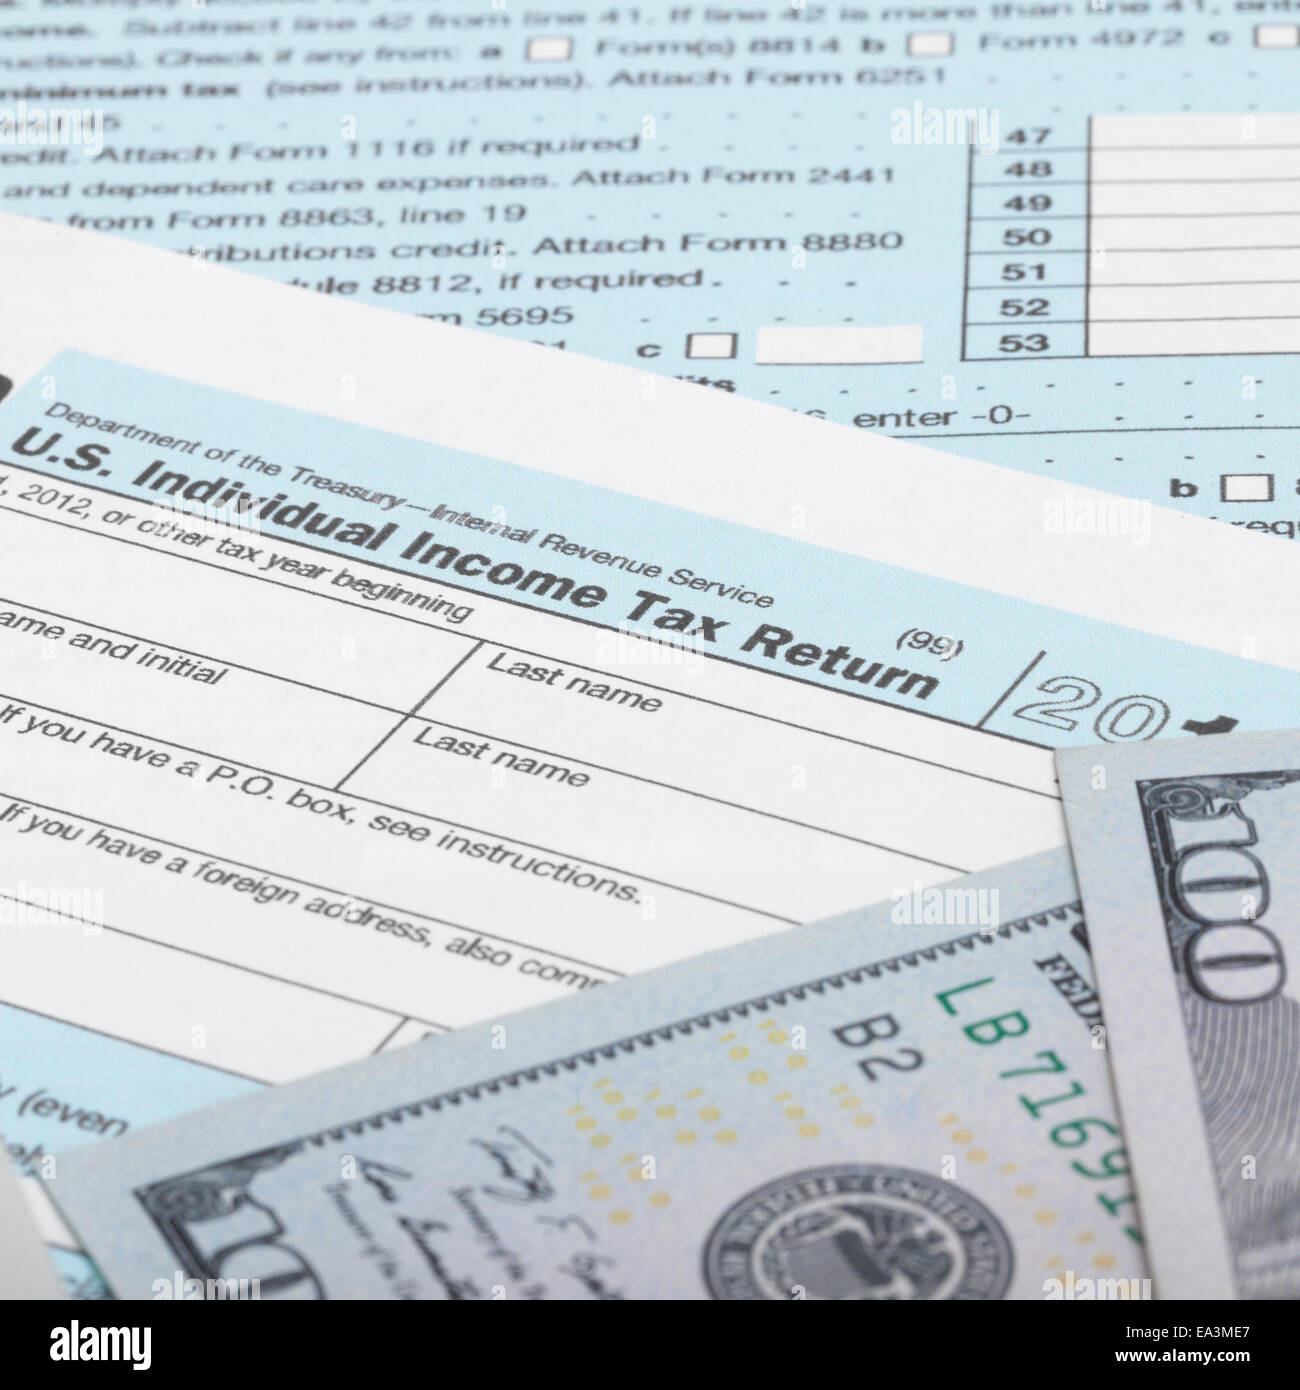 Irs Tax Form Money Stock Photos & Irs Tax Form Money Stock Images ...